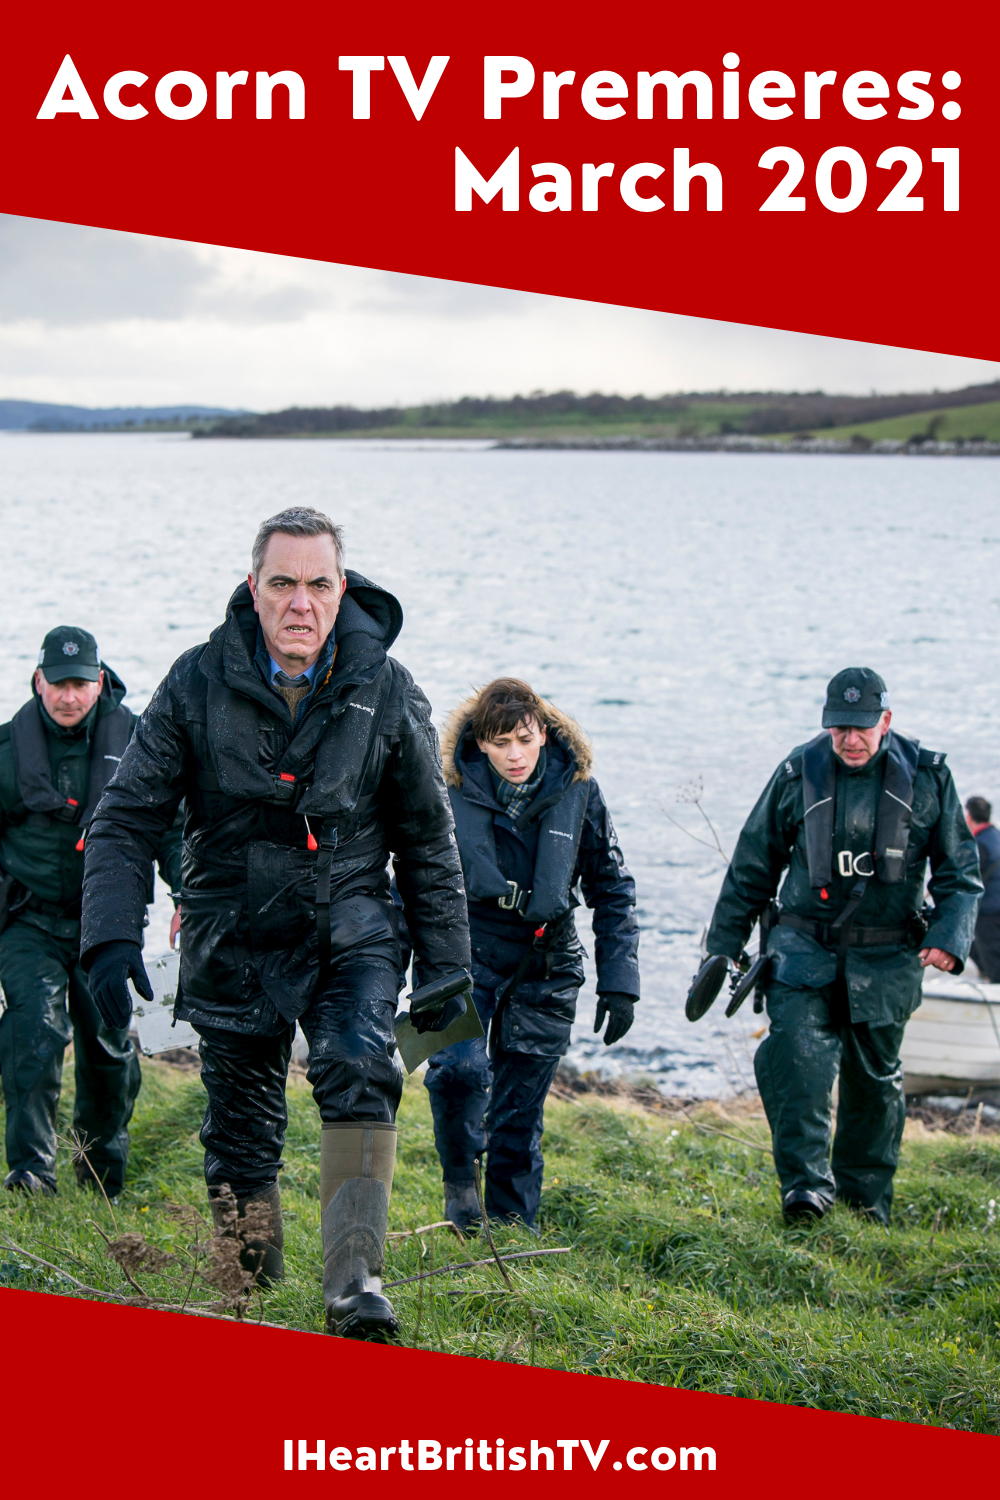 March British TV Premieres: What's New on Acorn TV for March 2021? 14